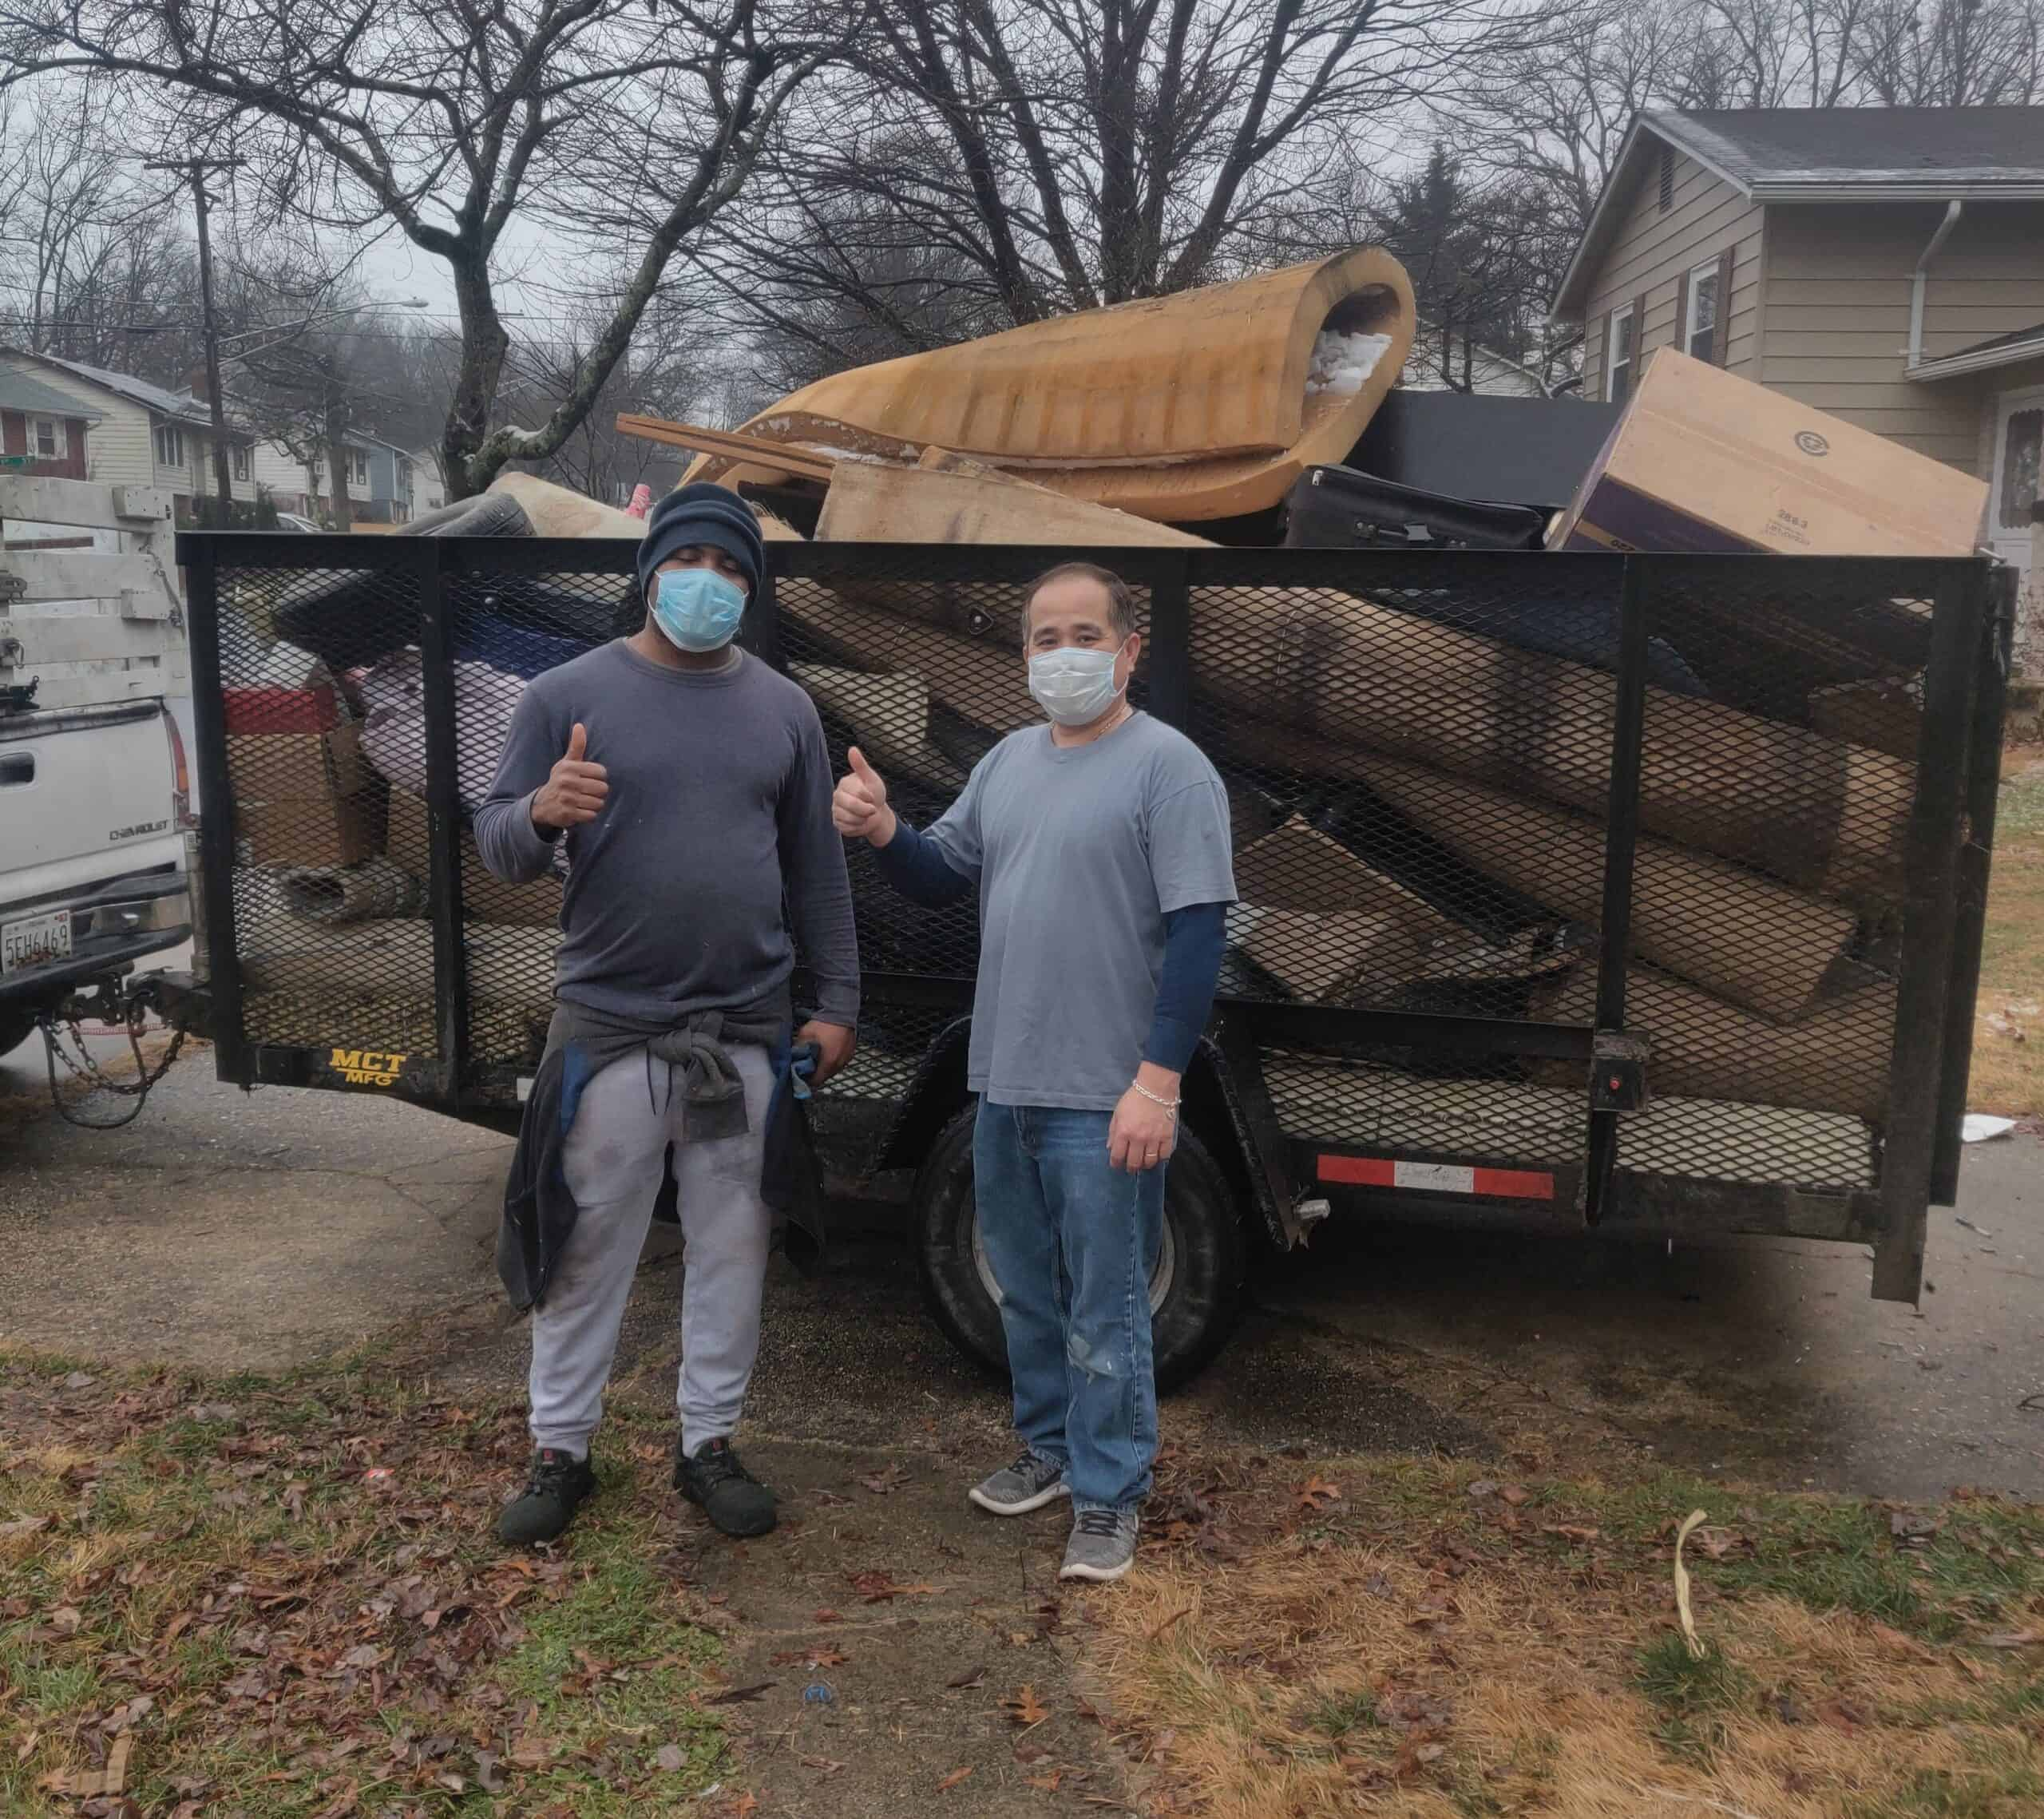 Junk removal pricing,junk removal cost,junk removal prices,junk removal estimate,junk removal prices near me,junk removal rates,junk hauling prices,junk removal cost near me,junk removal service cost | clutch junk removal